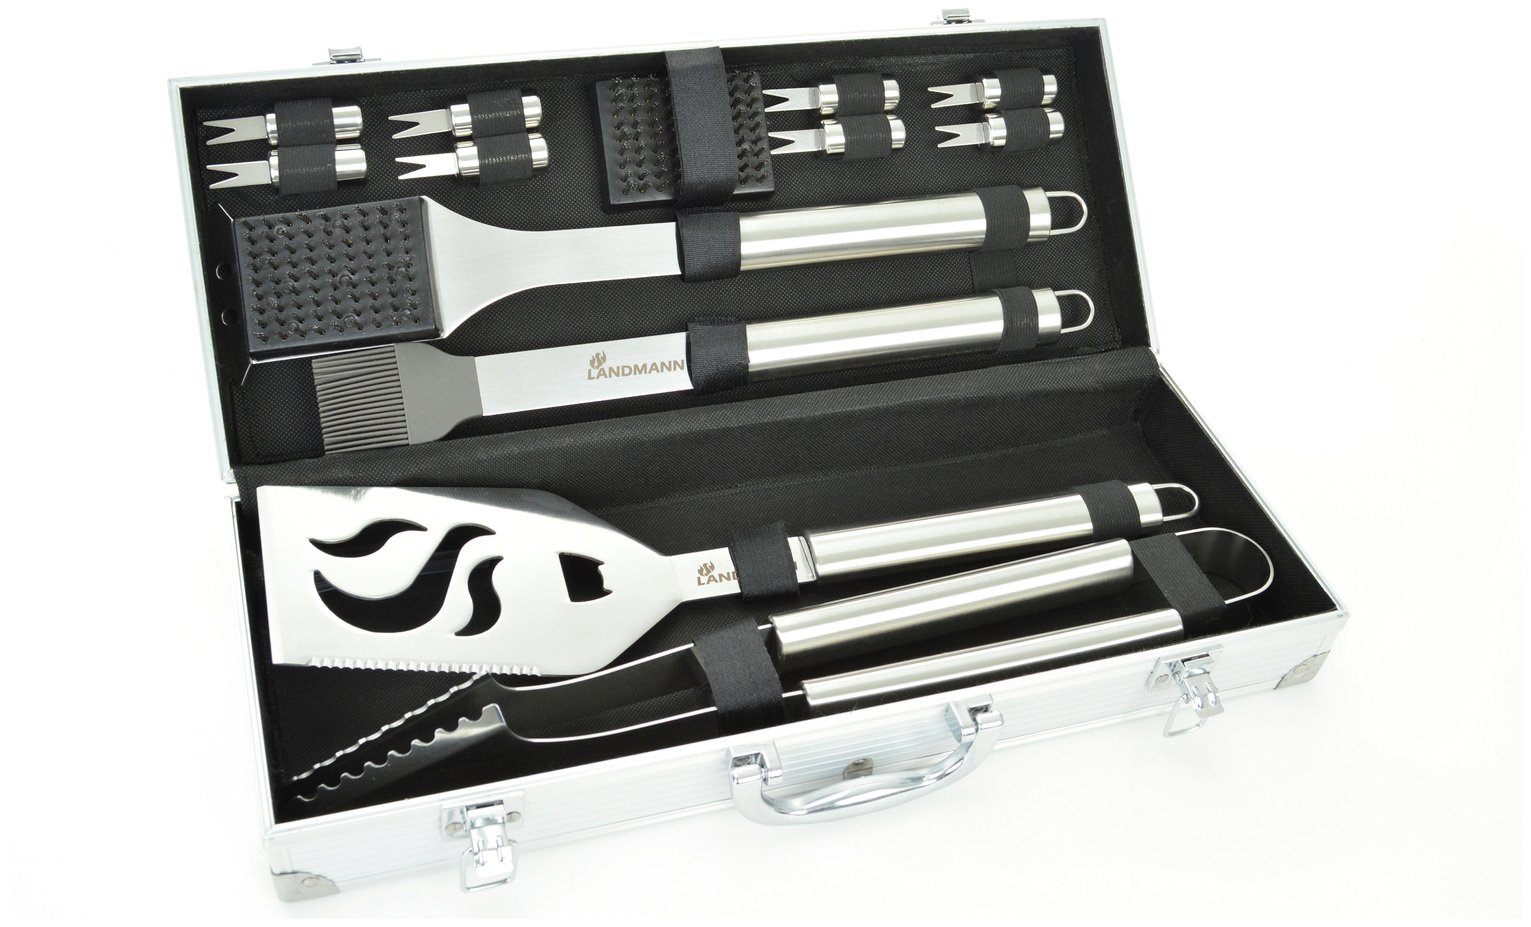 Image of Landmann 13 Piece Stainless Steel Tool Set